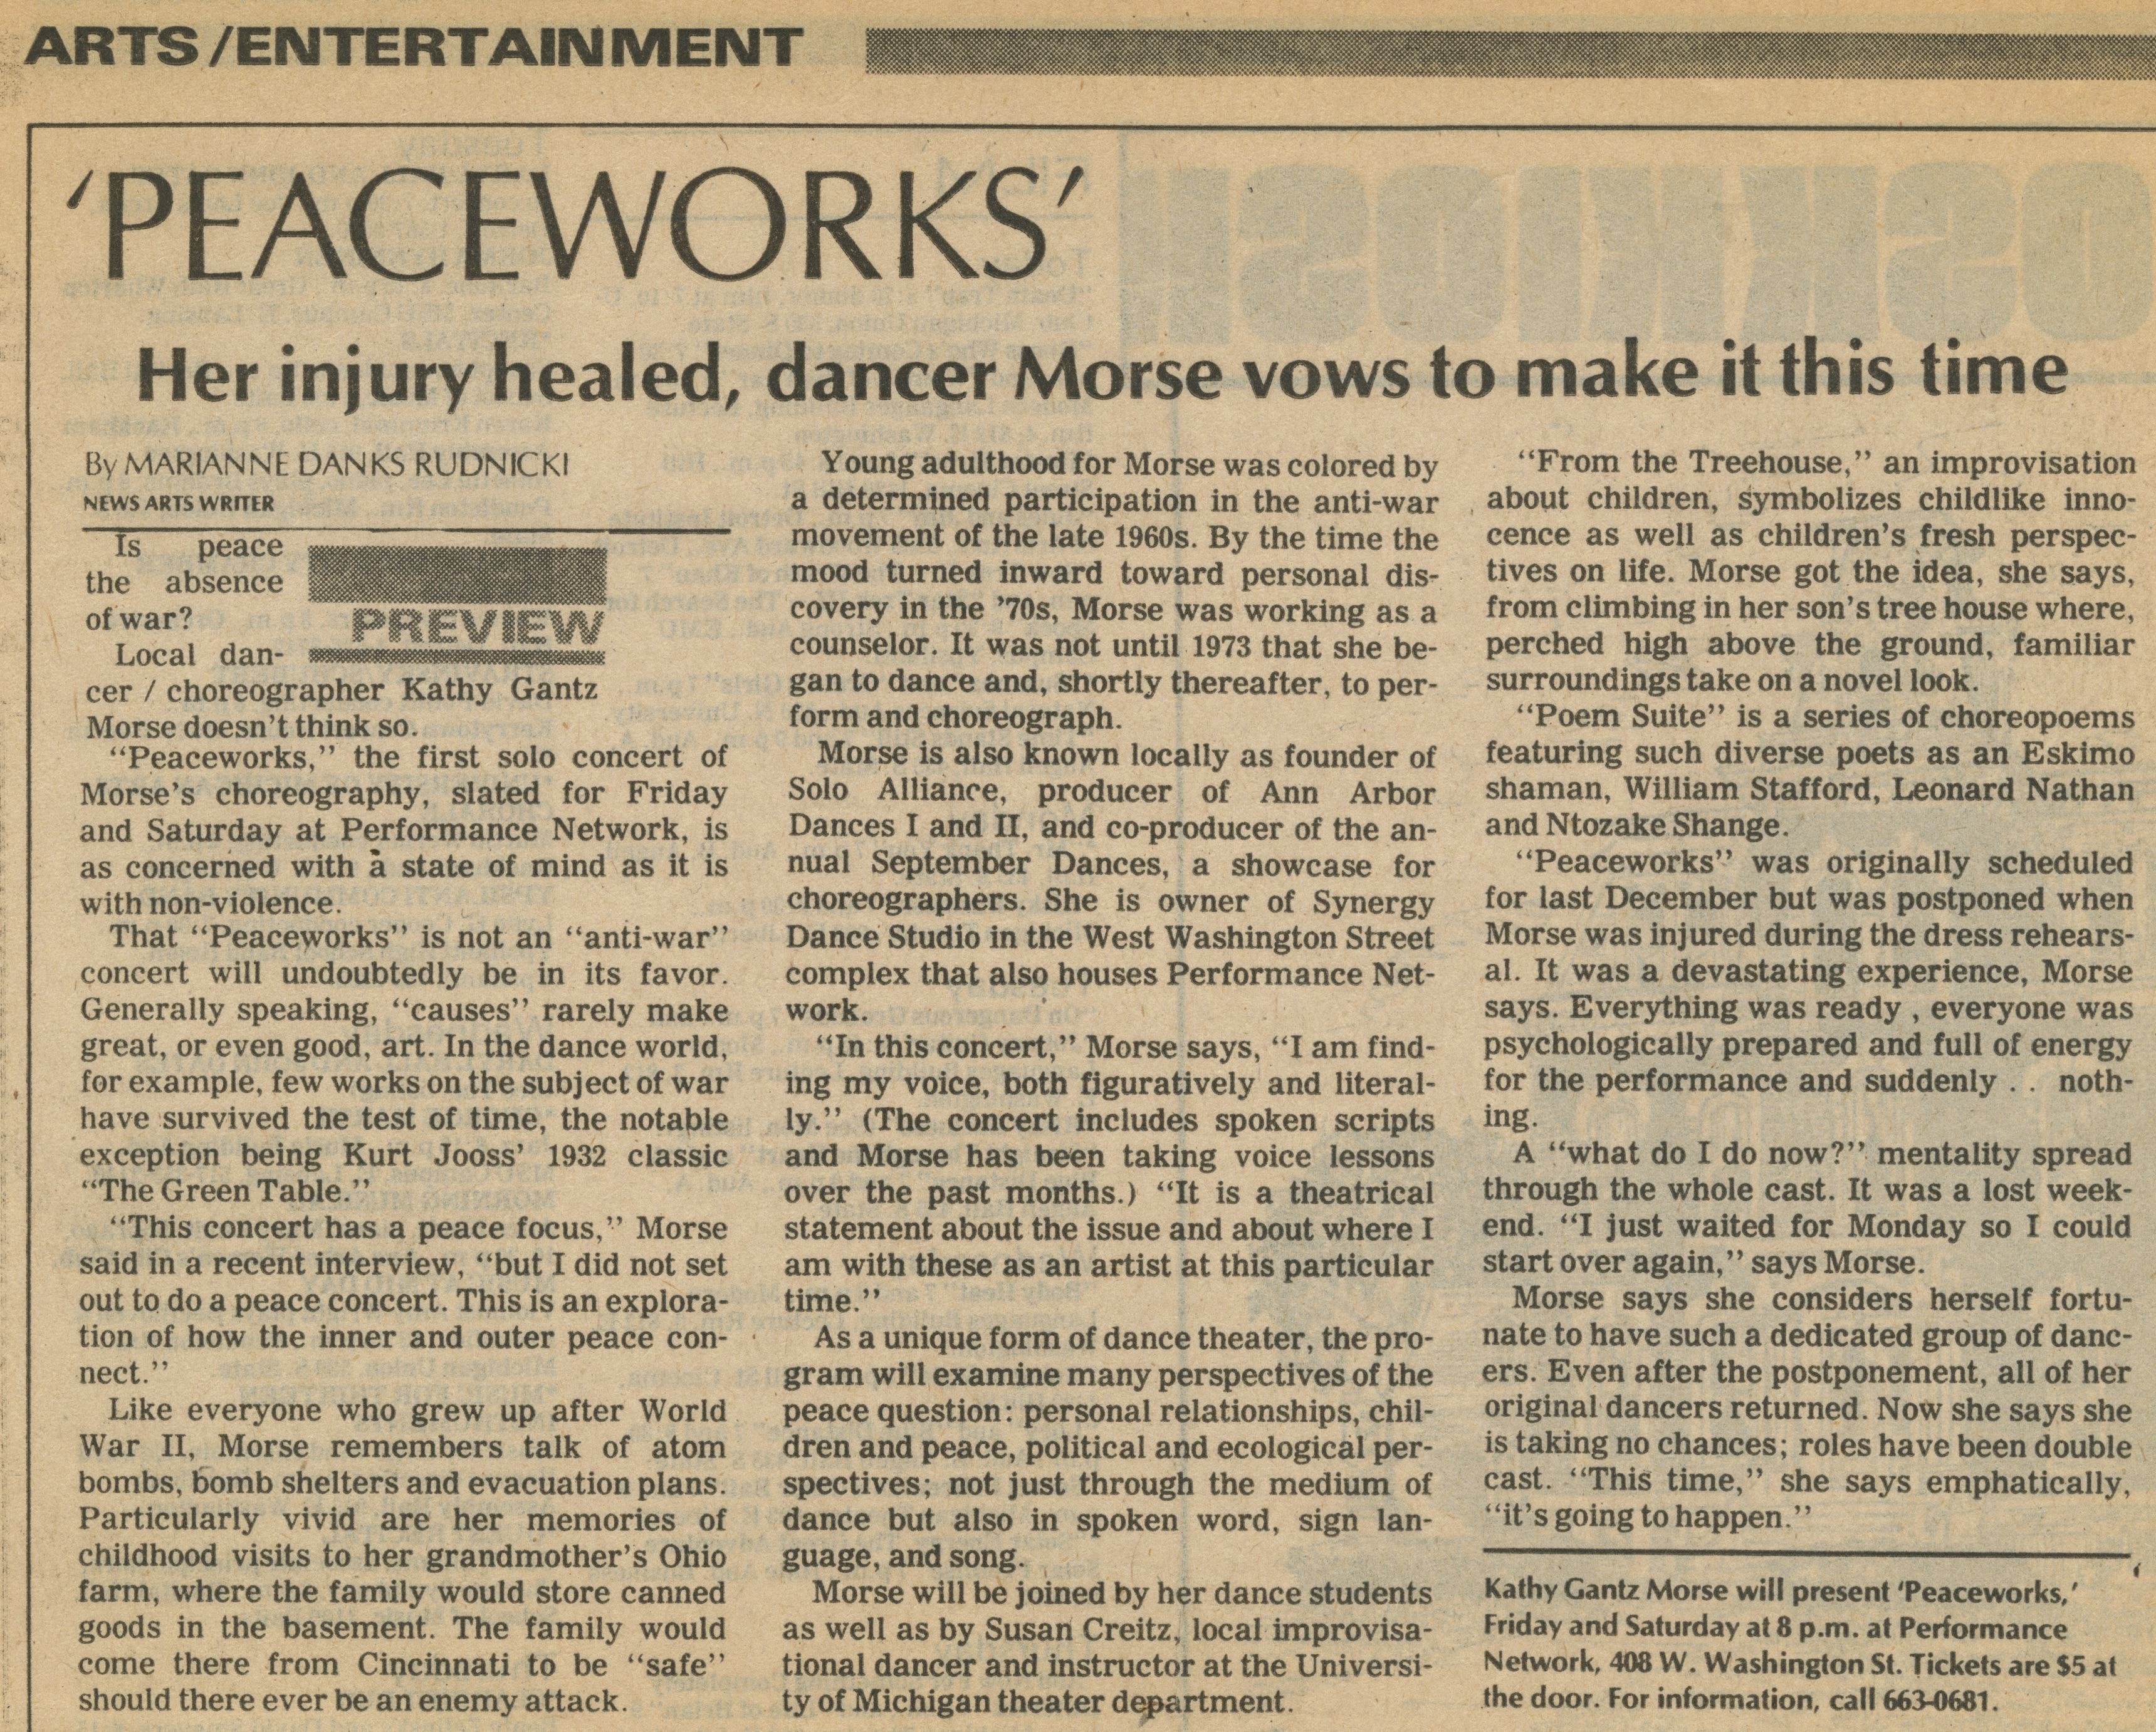 'Peaceworks' Her injury healed, dancer Morse vows to make it this time image